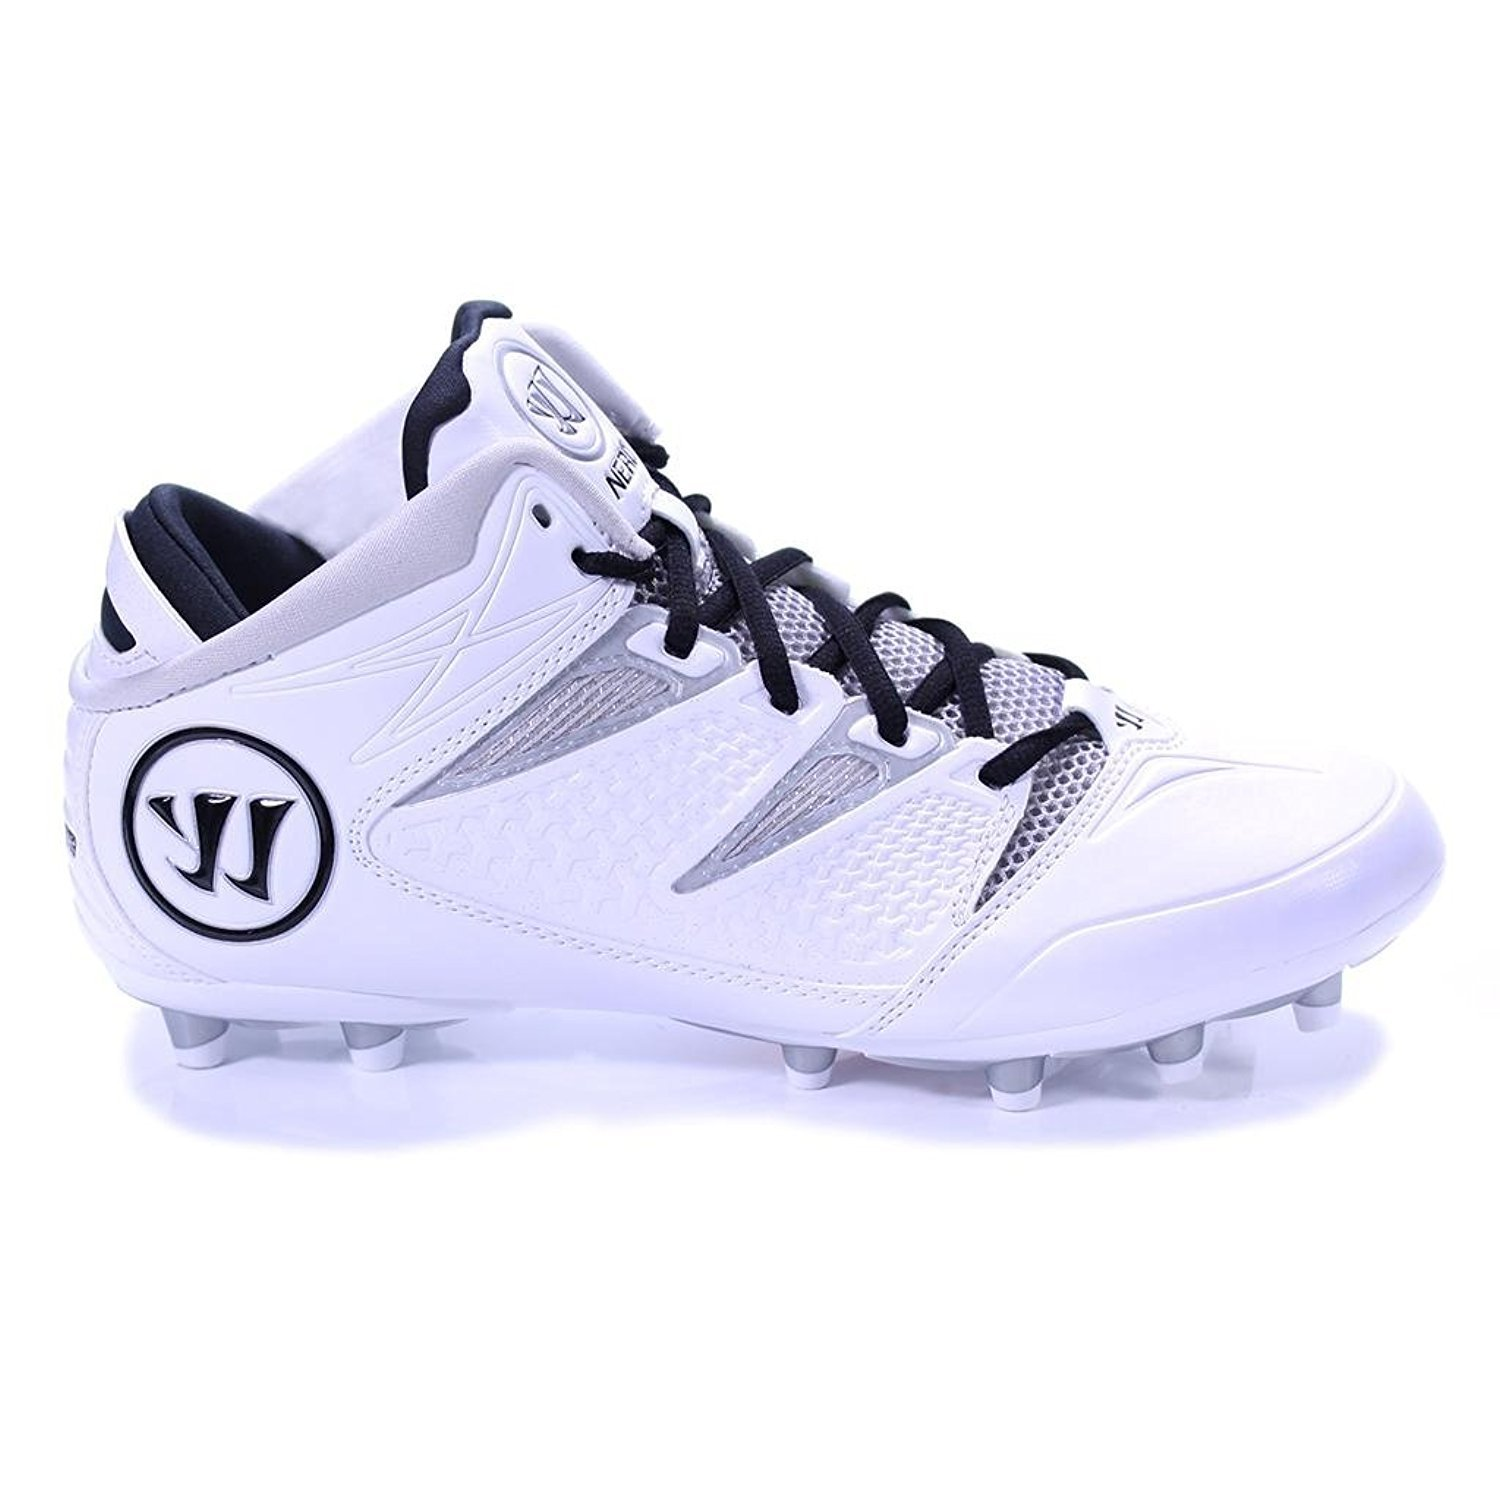 dbaa65979 Buy WARRIOR Mens Second Degree 3.0 Lacrosse Cleats in Cheap Price on ...